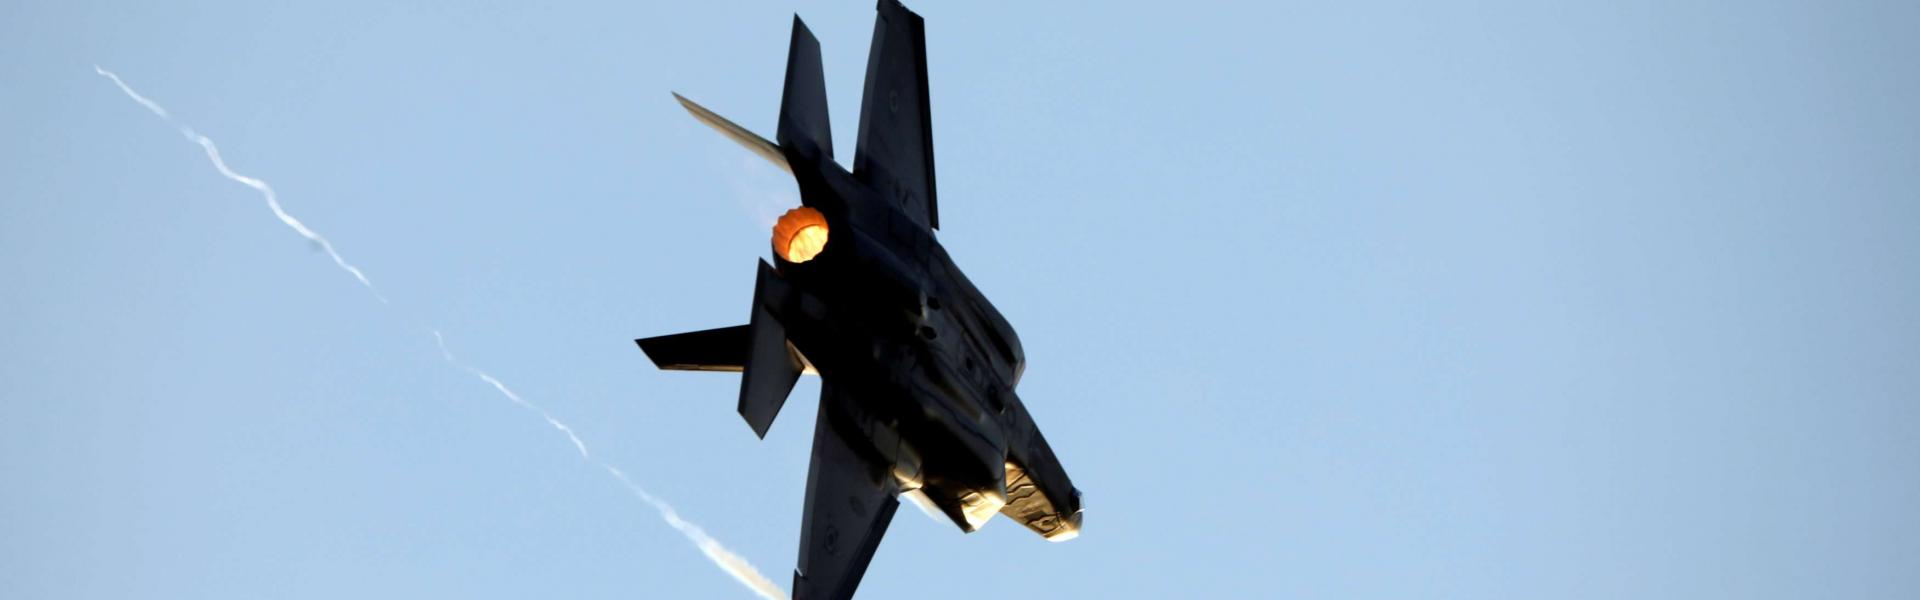 Ejecting Turkey from F-35 programme 'right decision for wrong reason' - analysis 1